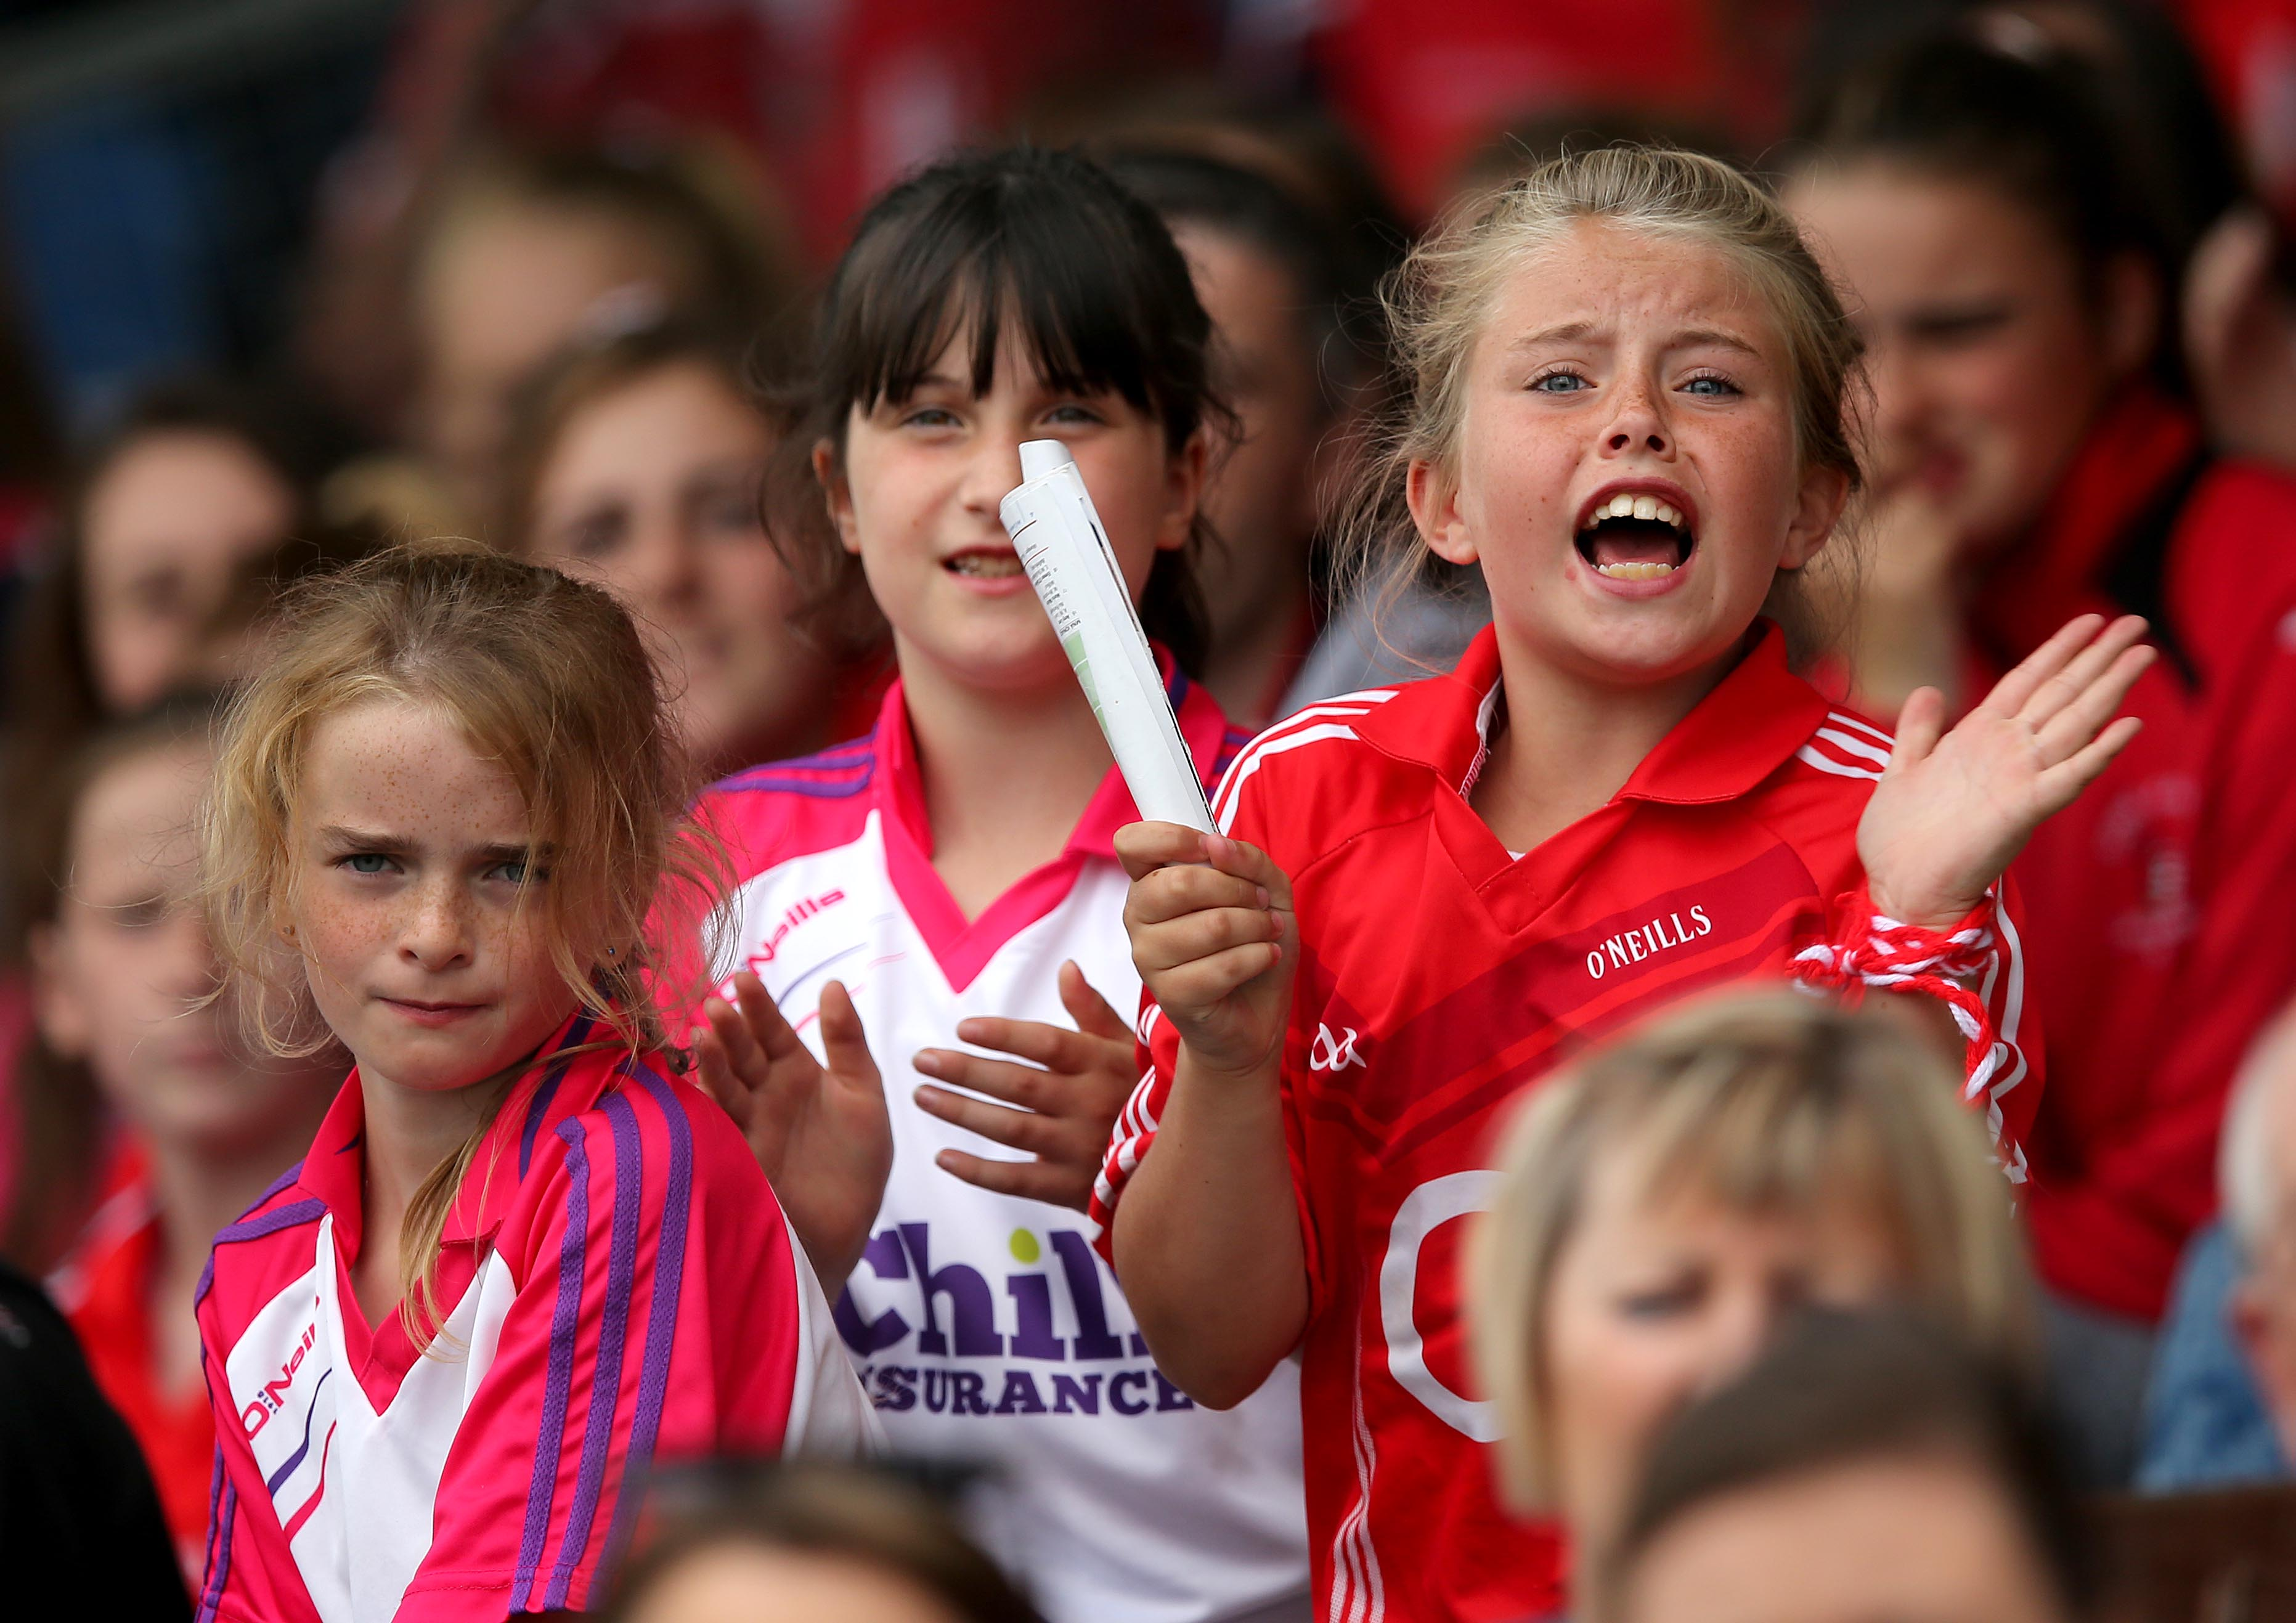 REPRO FREE***PRESS RELEASE NO REPRODUCTION FEE*** Liberty Insurance Senior Camogie Championship Semi-Final, Walsh Park, Waterford 16/8/2015 Kilkenny vs Cork A young Cork fan cheers on her team near the end of the game Mandatory Credit ©INPHO/Ryan Byrne